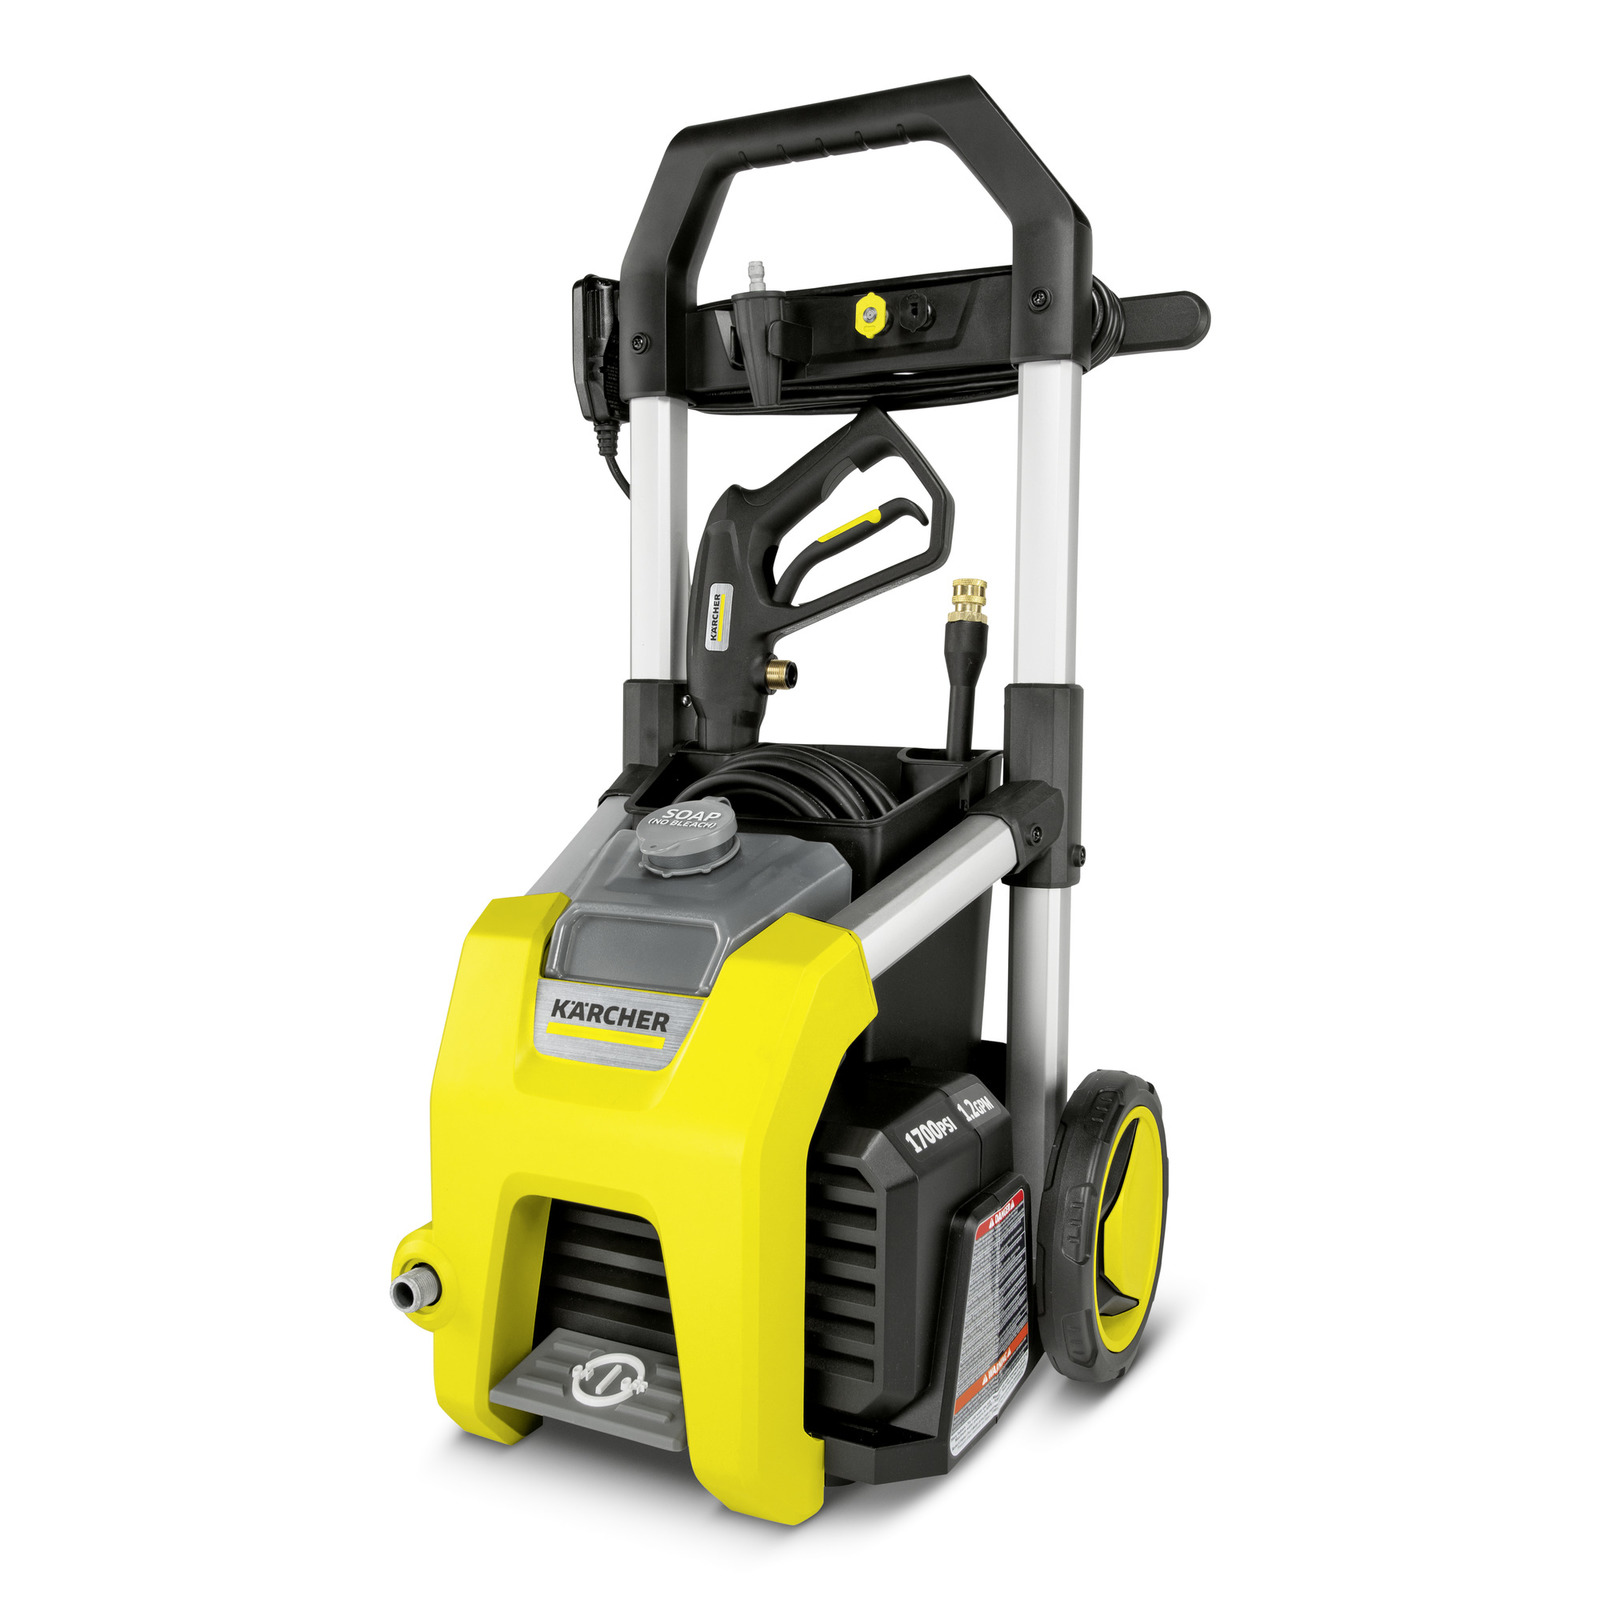 hight resolution of k1700 11061090 https www kaercher com us home garden electric pressure washers k1700 11061090 html the k1700 offers performance and convenience at a very